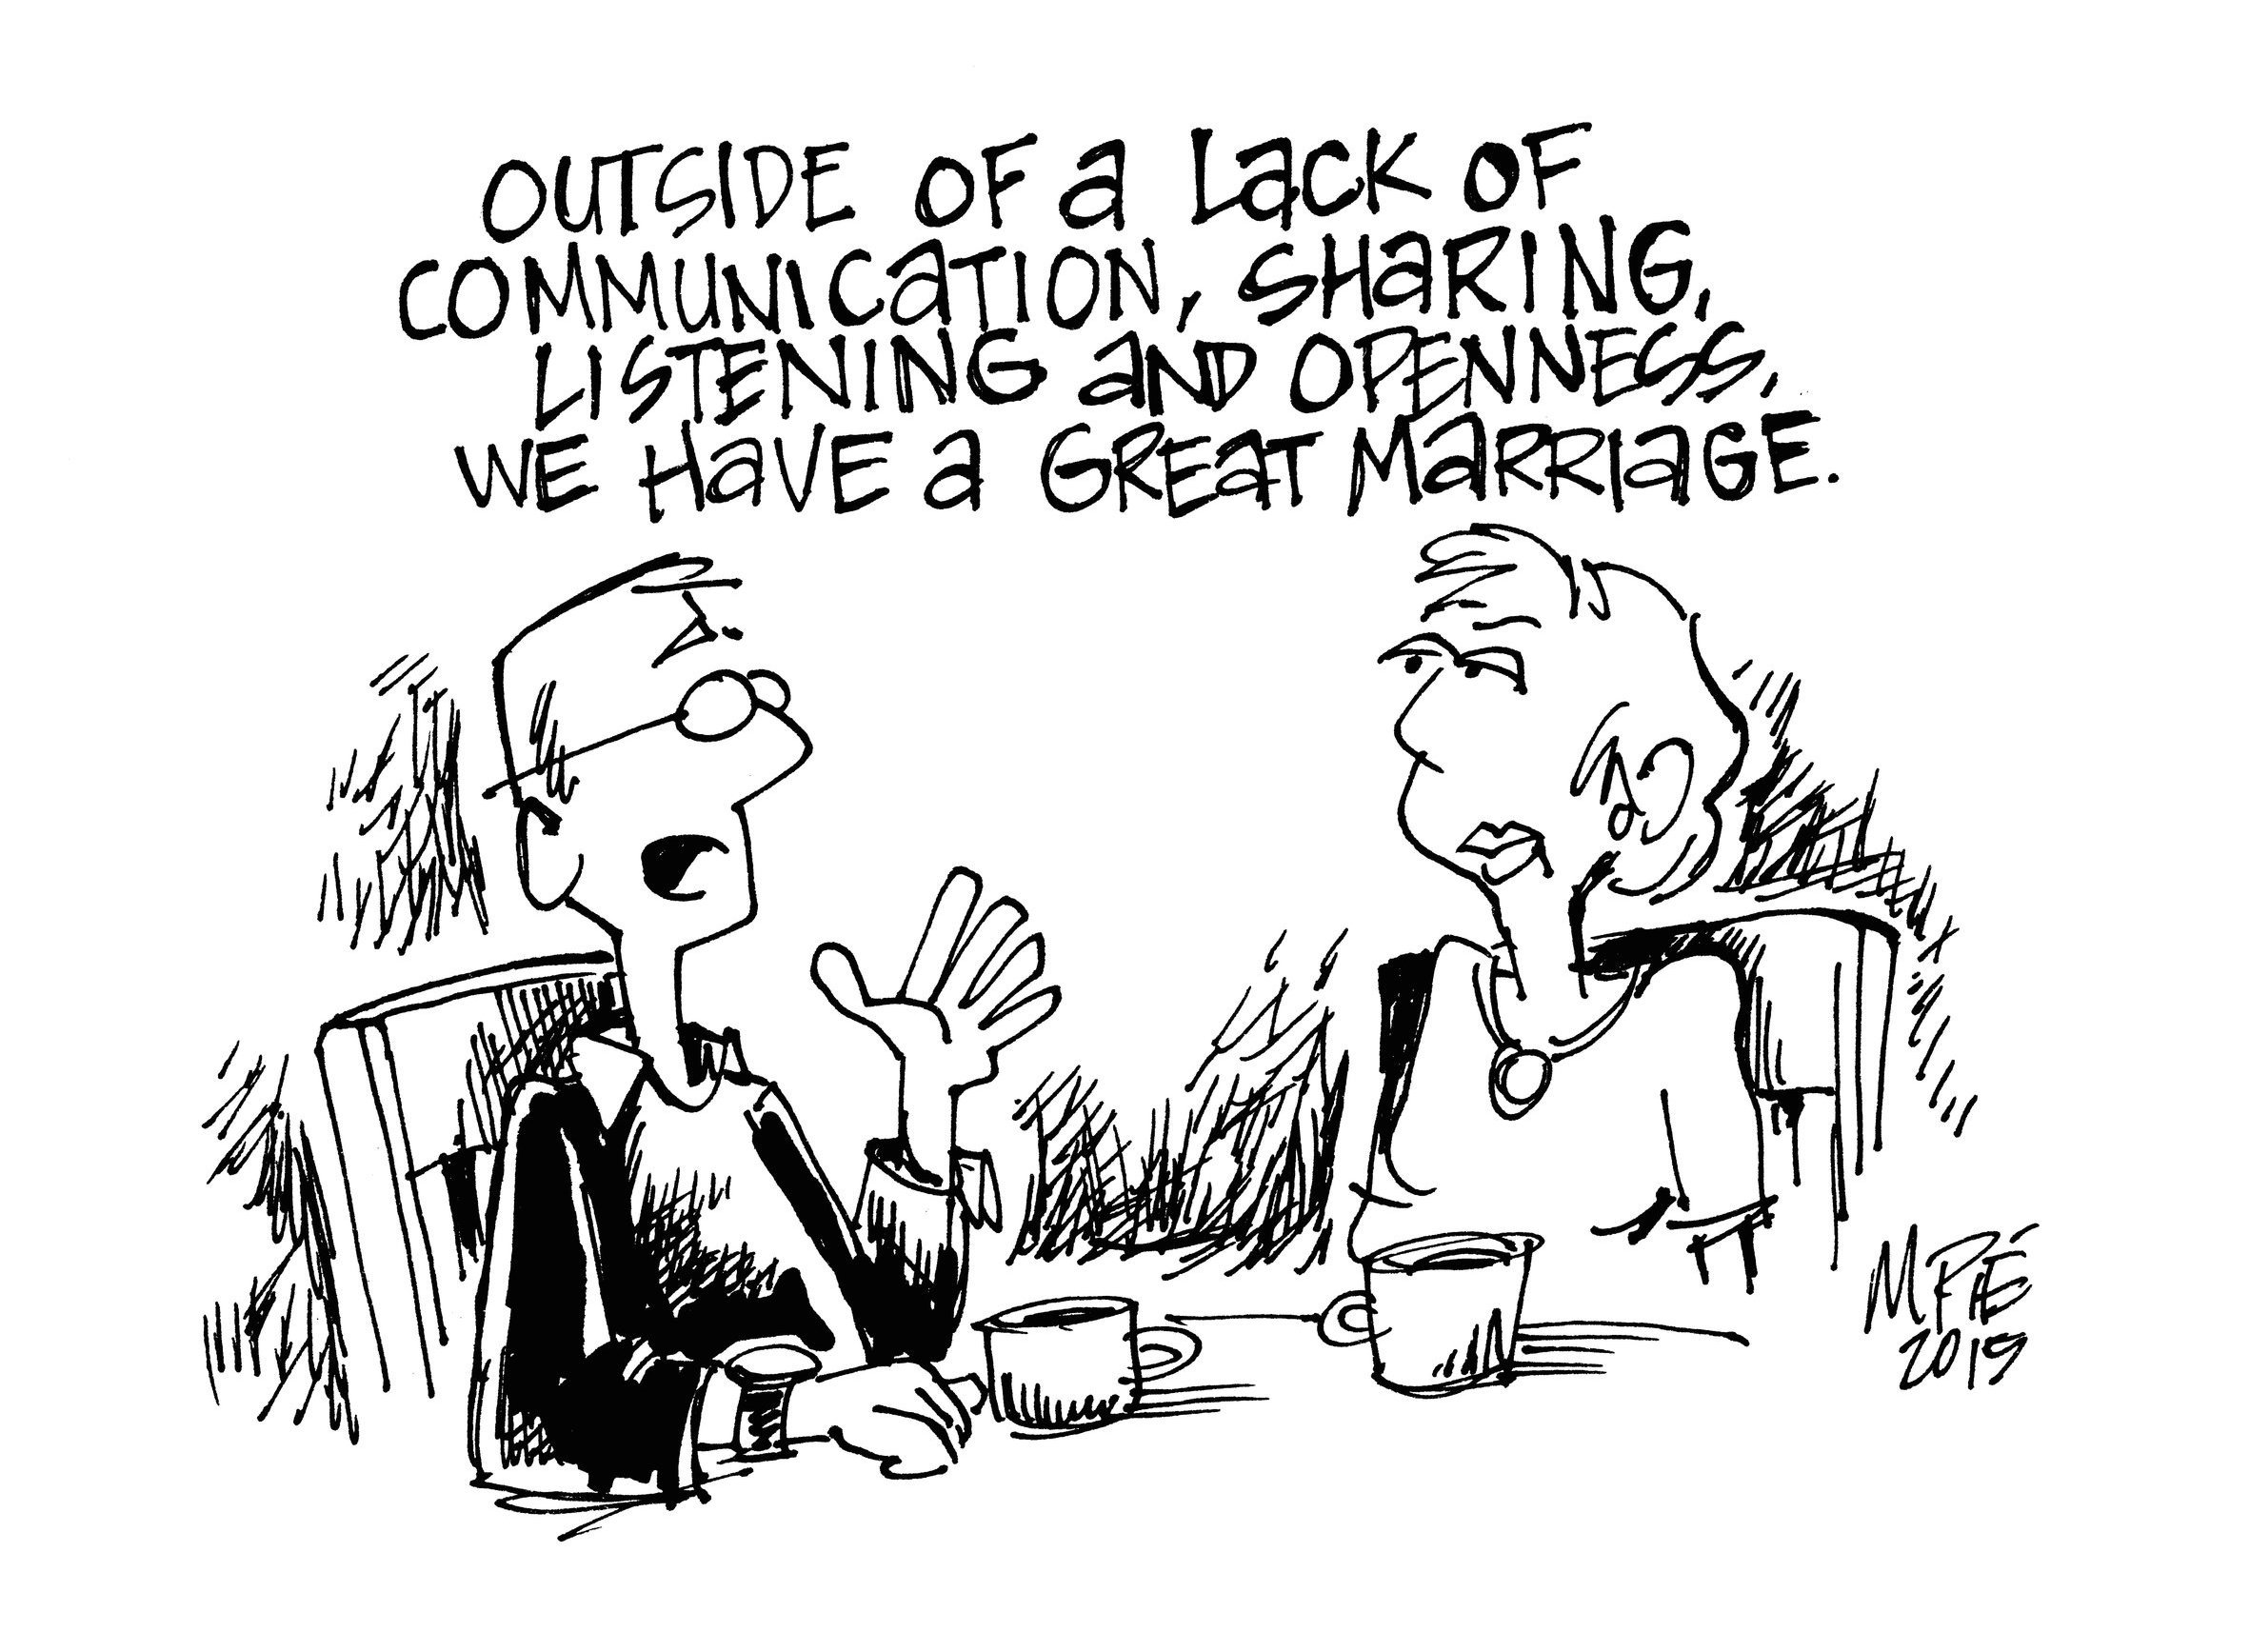 Cartoon: Outside of a lack of communication, listening, sharing, and communicating, we have a great marriage!